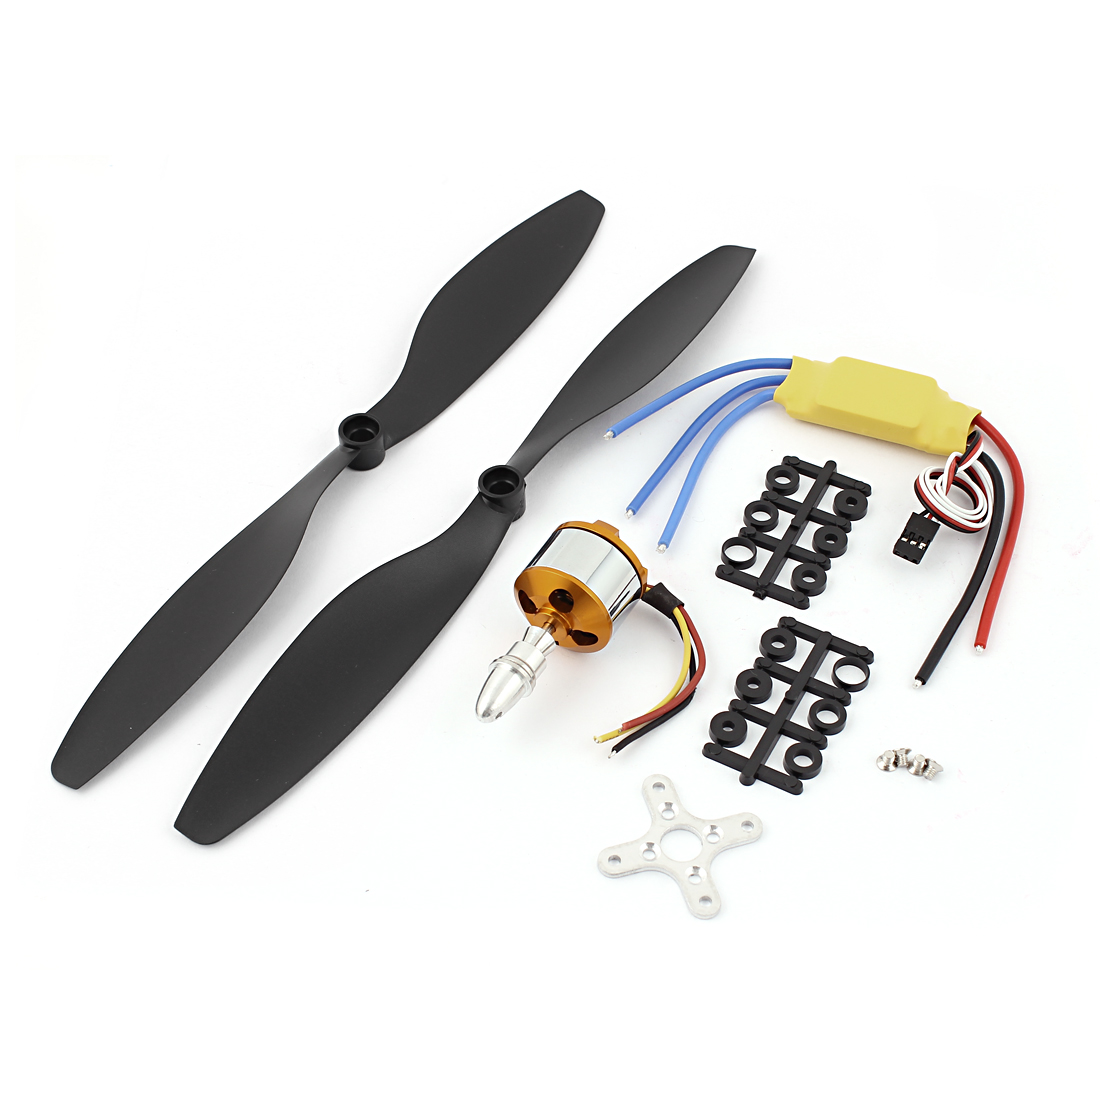 30A Brushless ESC + A2212 1000KV Motor + 1045 Propeller for DJI Phantom F450 550